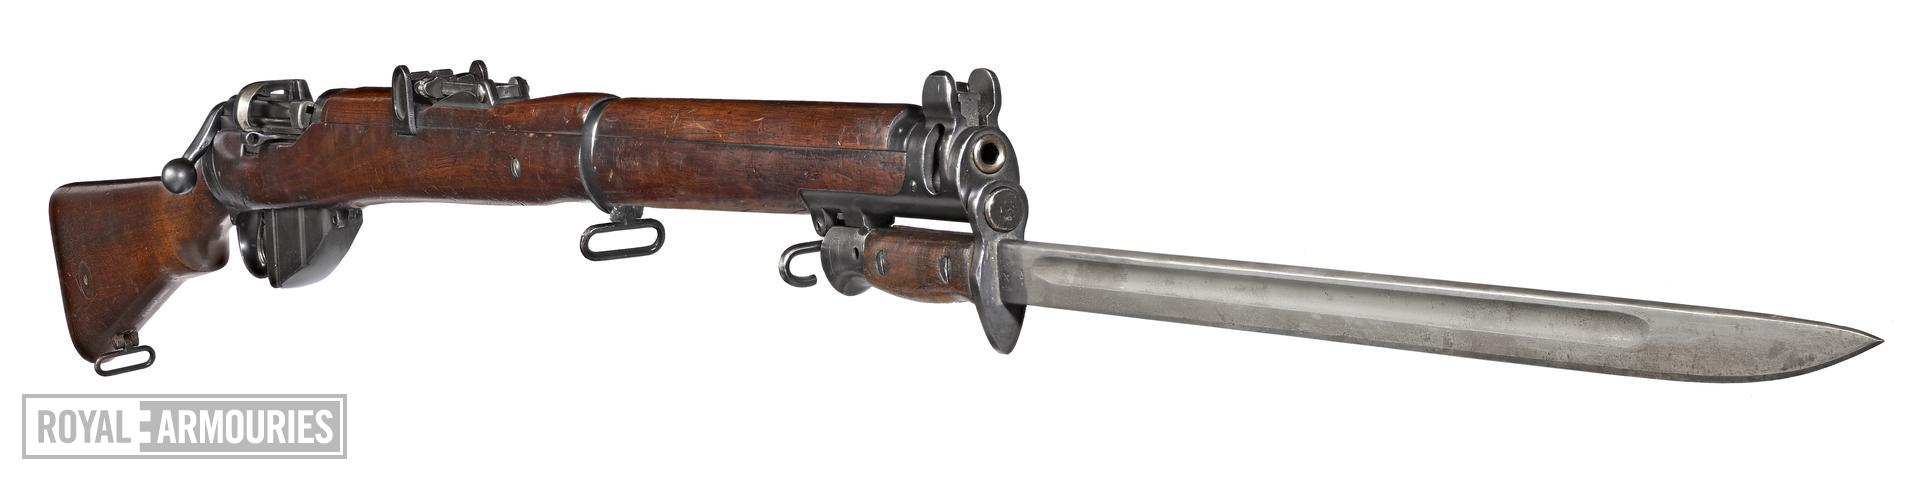 Short Magazine Lee Enfield (SMLE) Mk. III rifle, Britain, 1907. With Pattern 1907 hook guard bayonet (PR.1953) fitted.